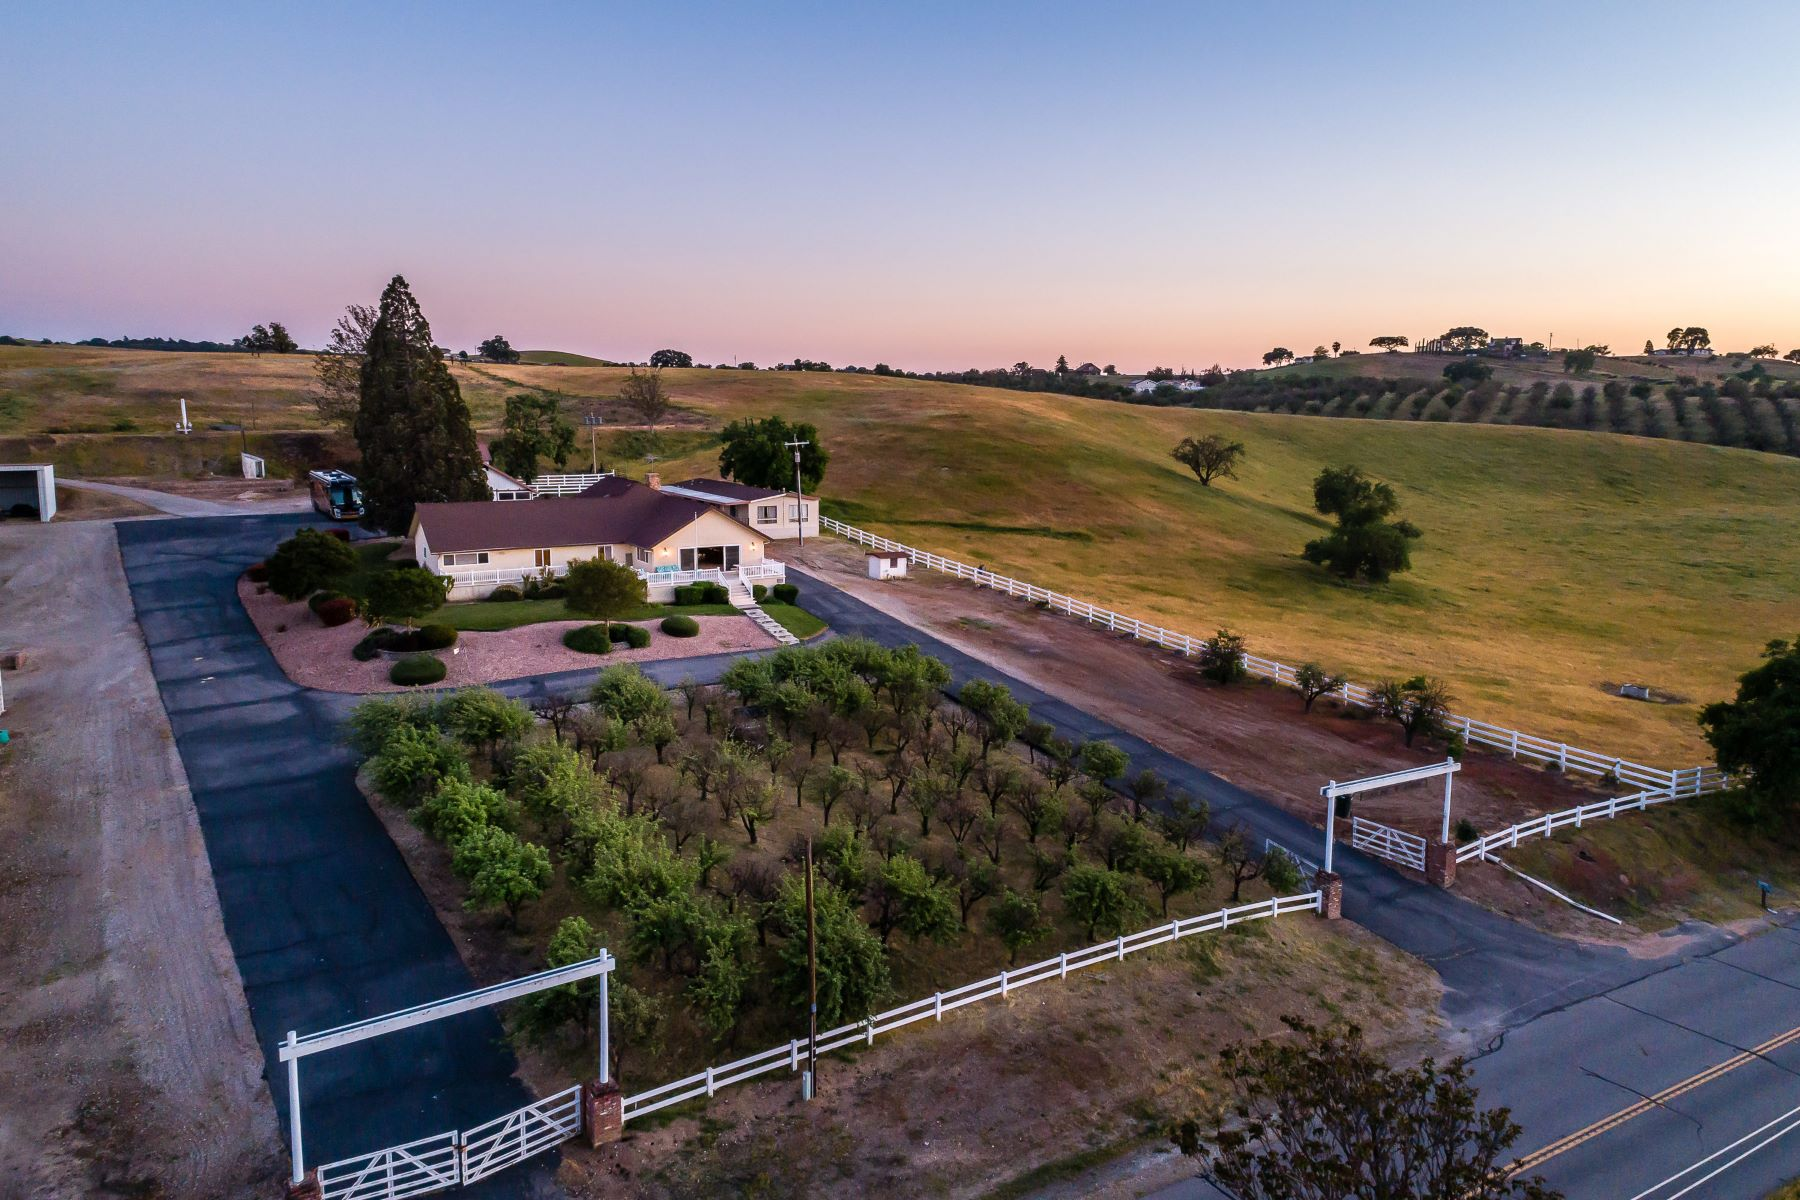 Single Family Homes for Sale at Smiling M Ranch 6425 Union Road Paso Robles, California 93446 United States